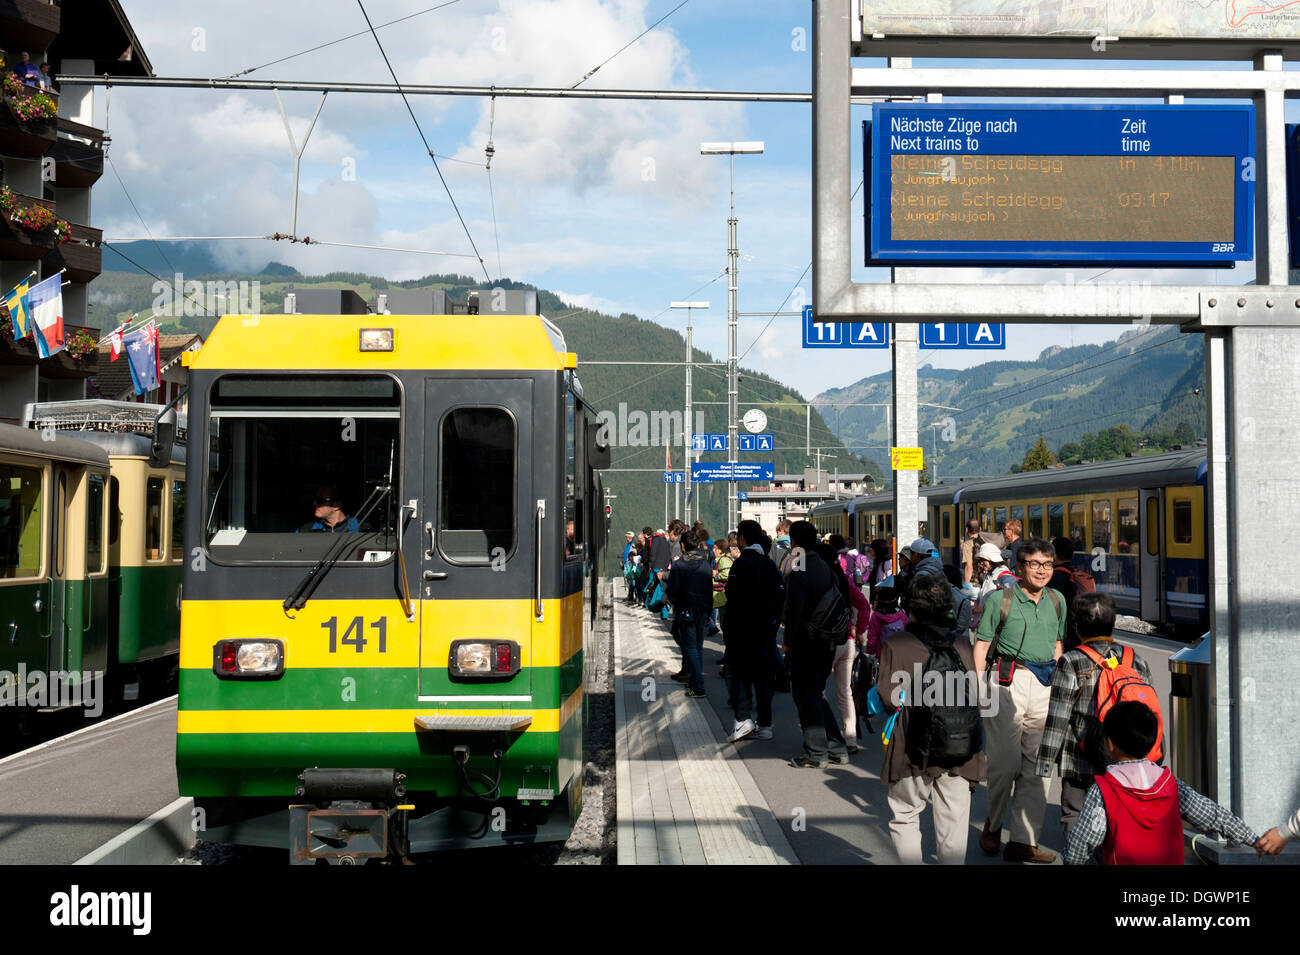 Train and travellers on the platform of the railway station of Grindelwald, Bernese Oberland, Canton of Bern, Alps, Switzerland - Stock Image